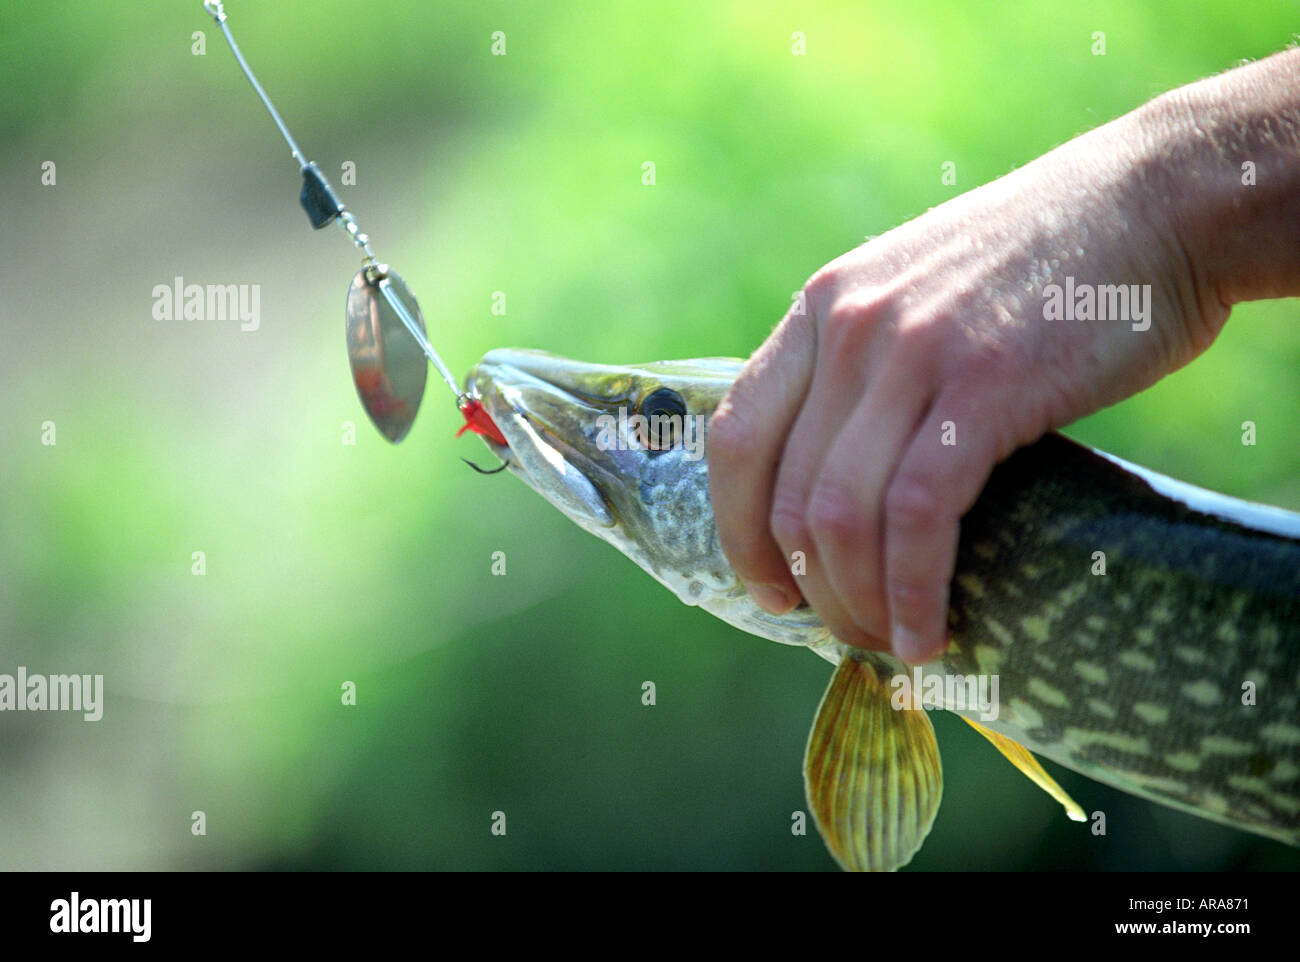 A pike caught on a fishing hook in Champagne Ardenne region of France - Stock Image